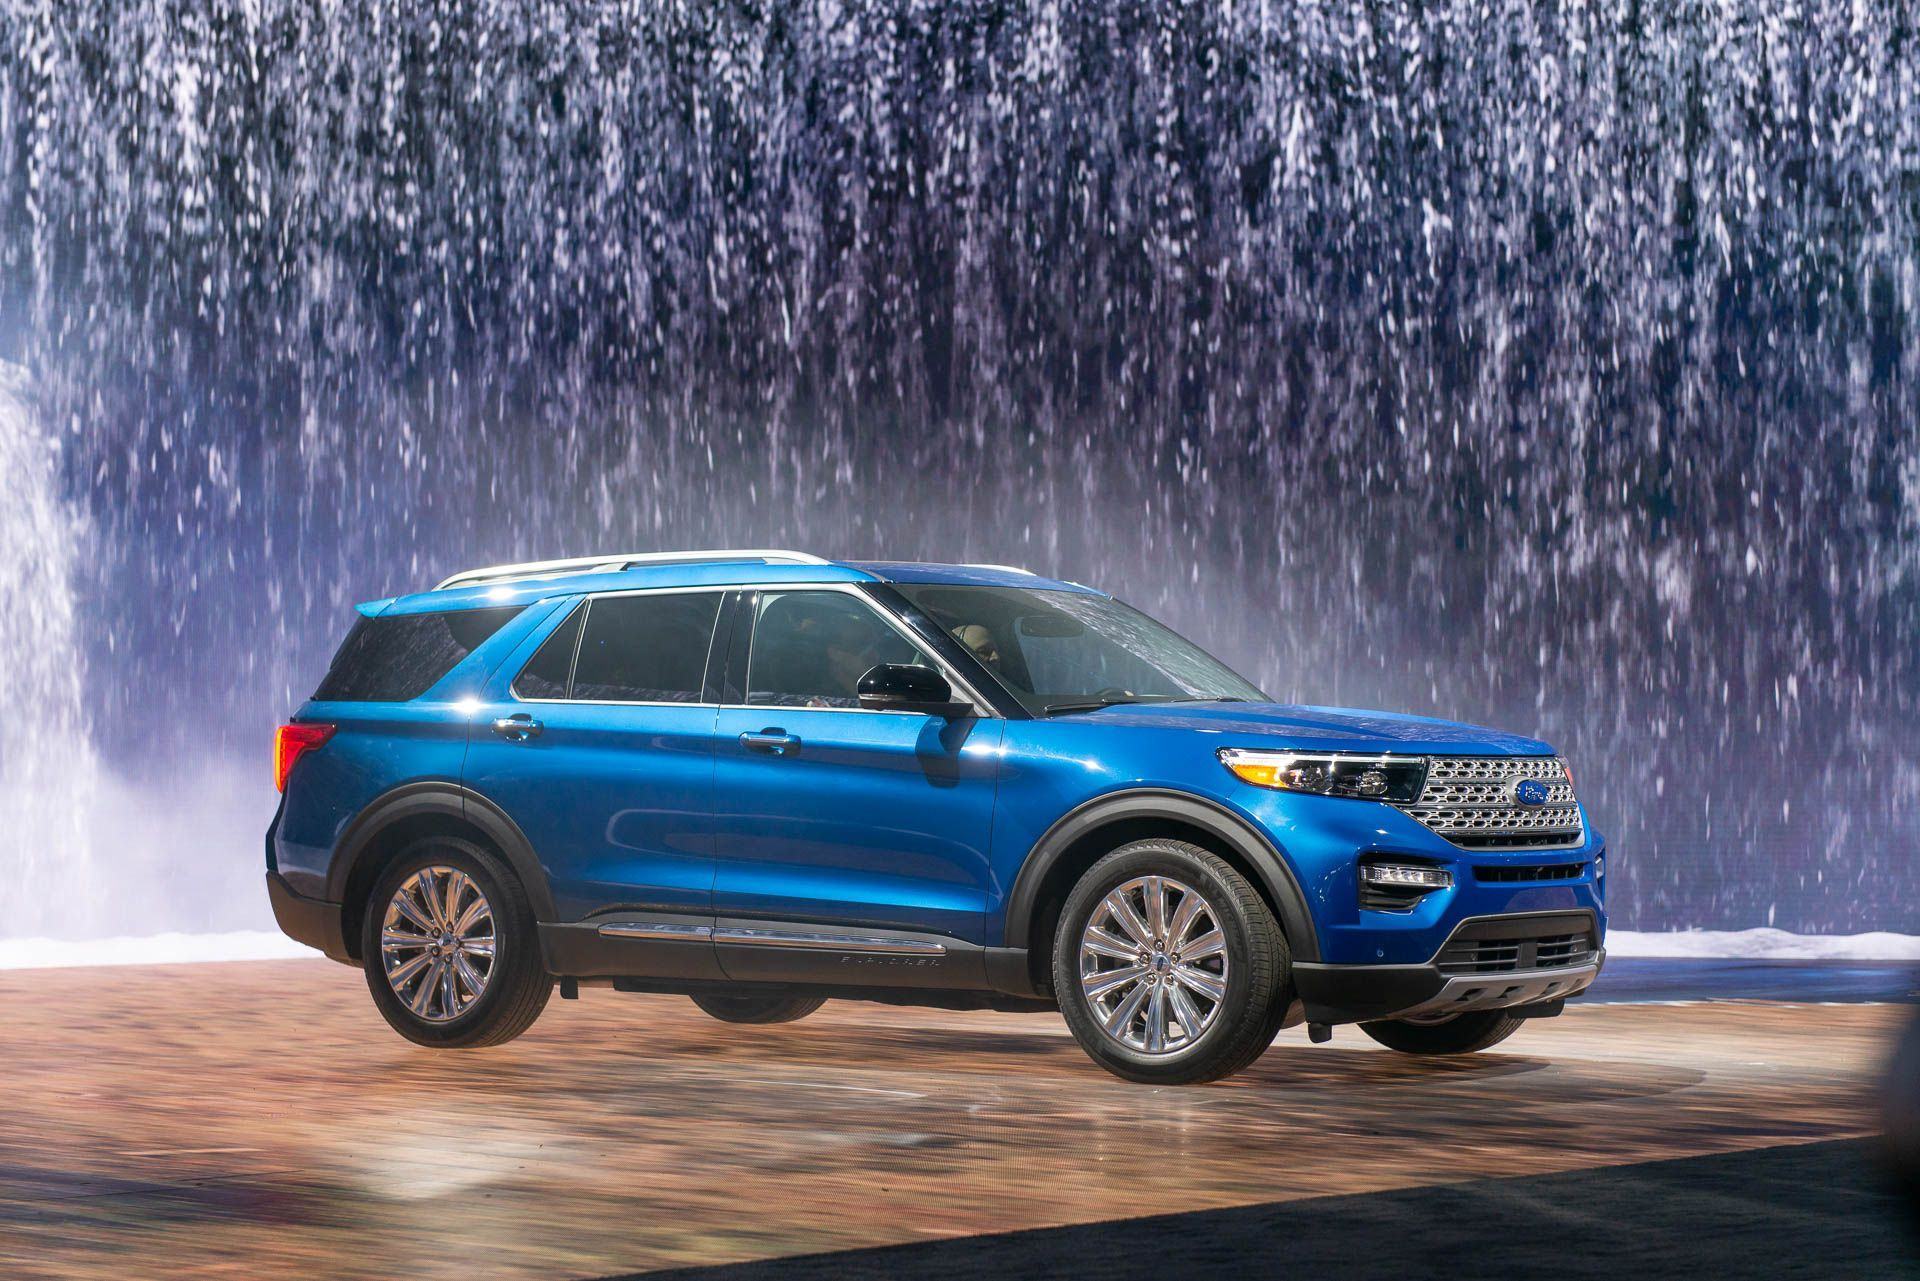 99 The 2021 Ford Explorer Sports Prices Prices In 2020 Ford Explorer Reviews Ford Explorer Sport Ford Explorer